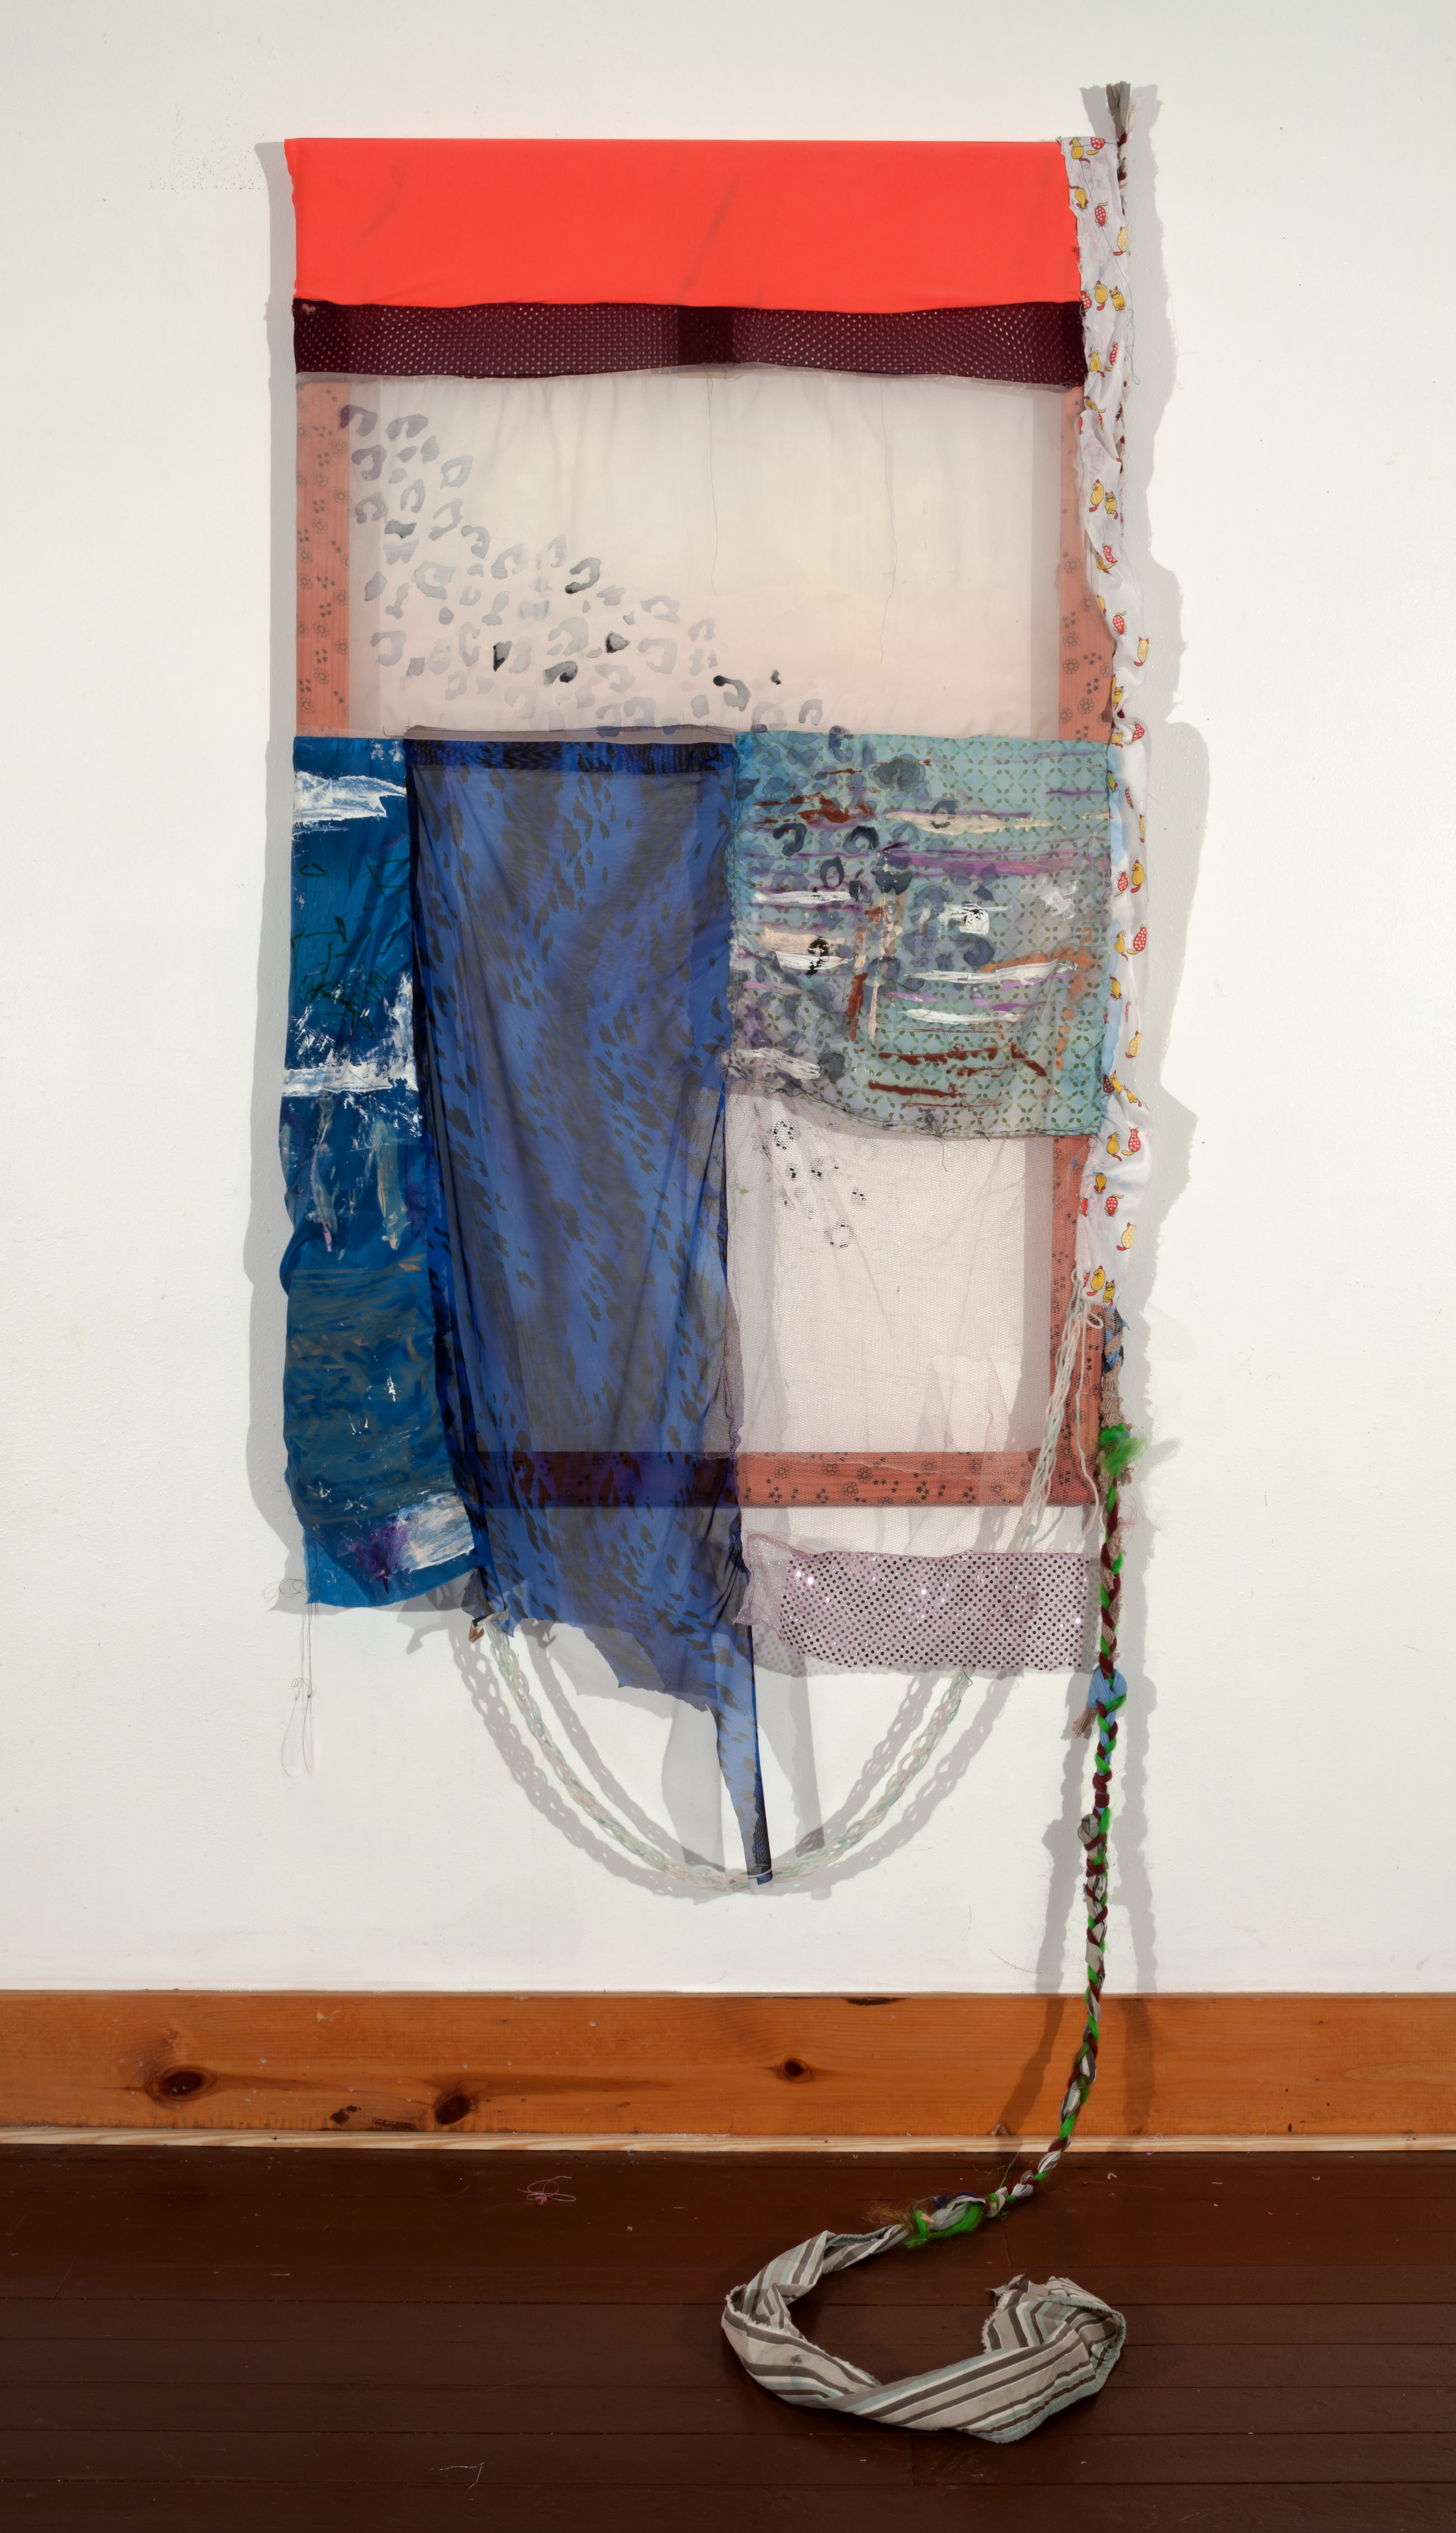 Tameka Jenean Norris, Desire, 2014, oil paint, and acrylic paint on fabric, 50 x 30 in